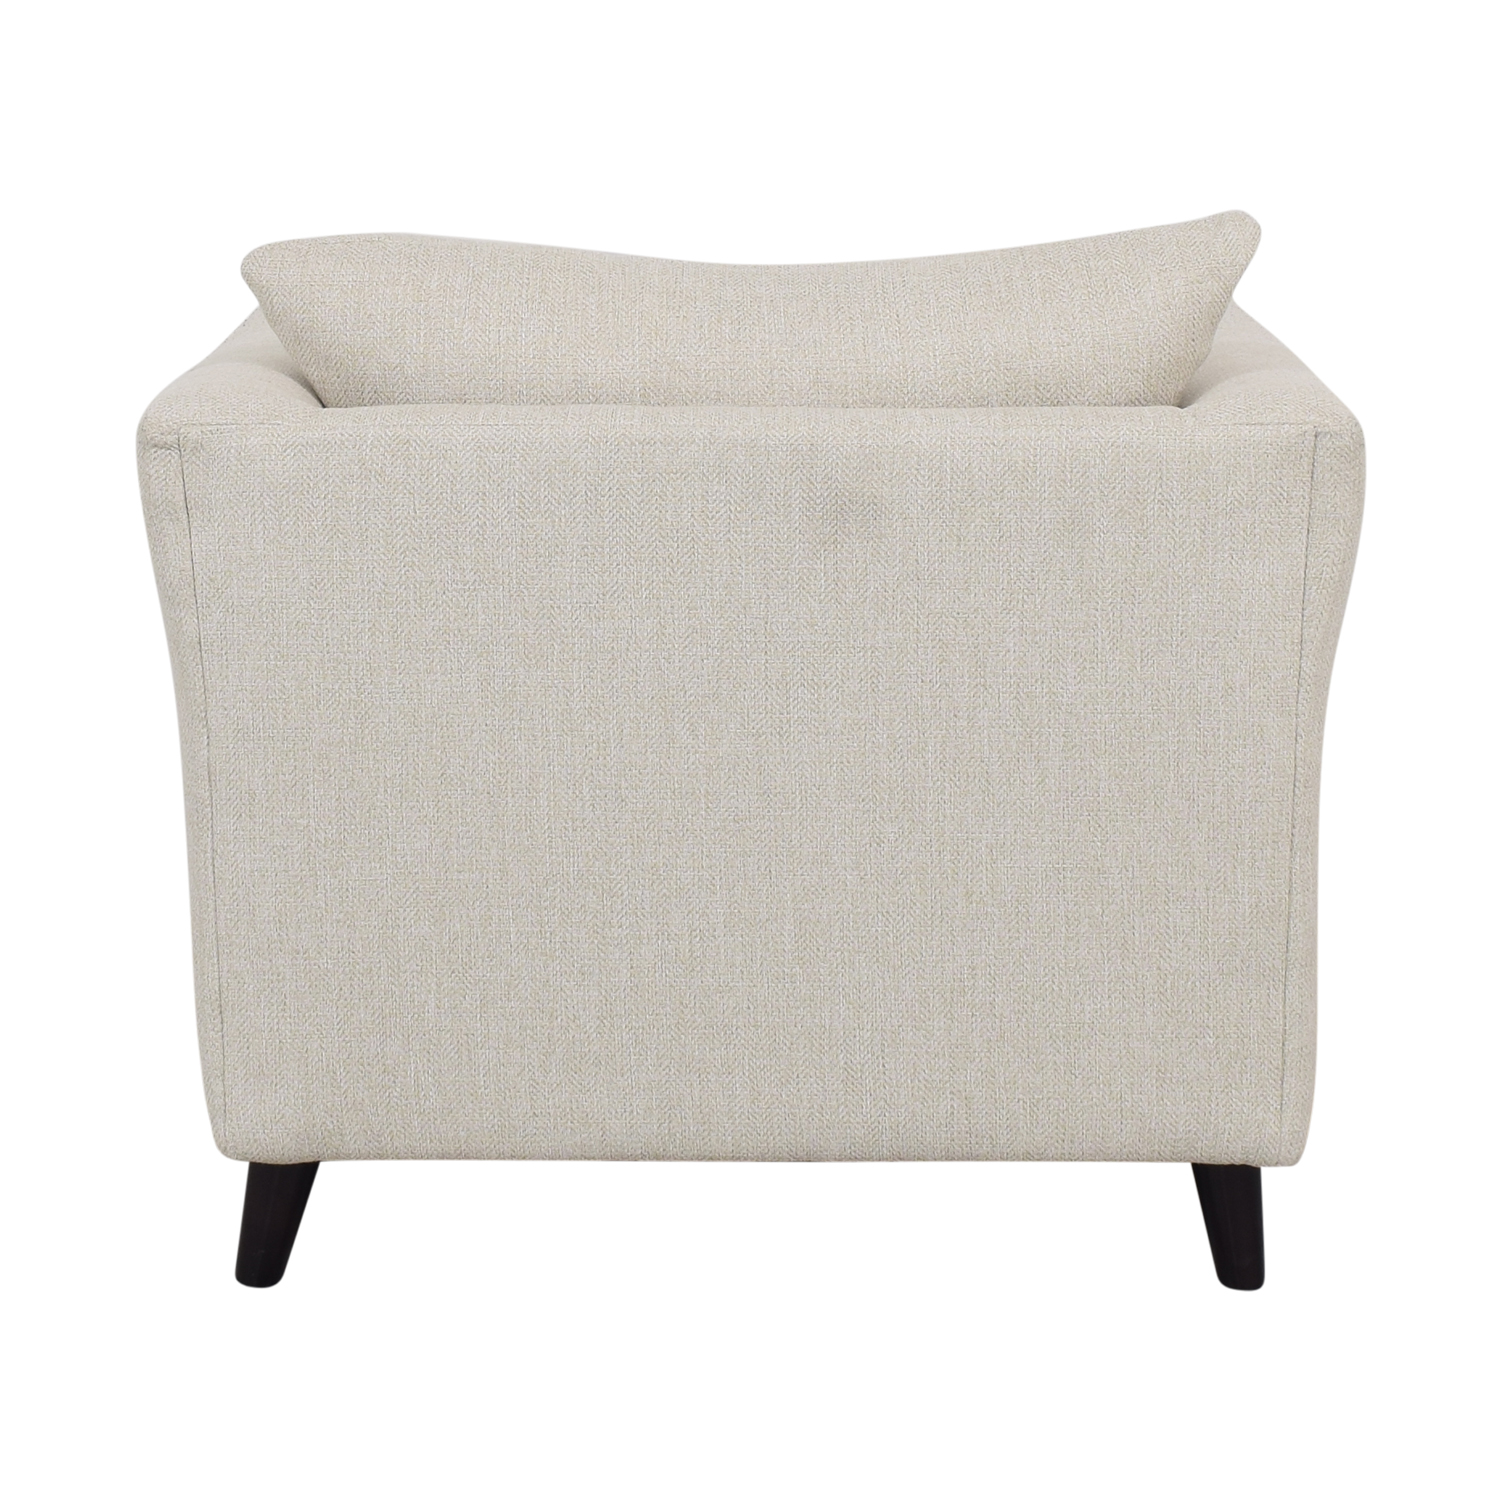 Raymour & Flanigan Raymour & Flanigan Accent Chair price